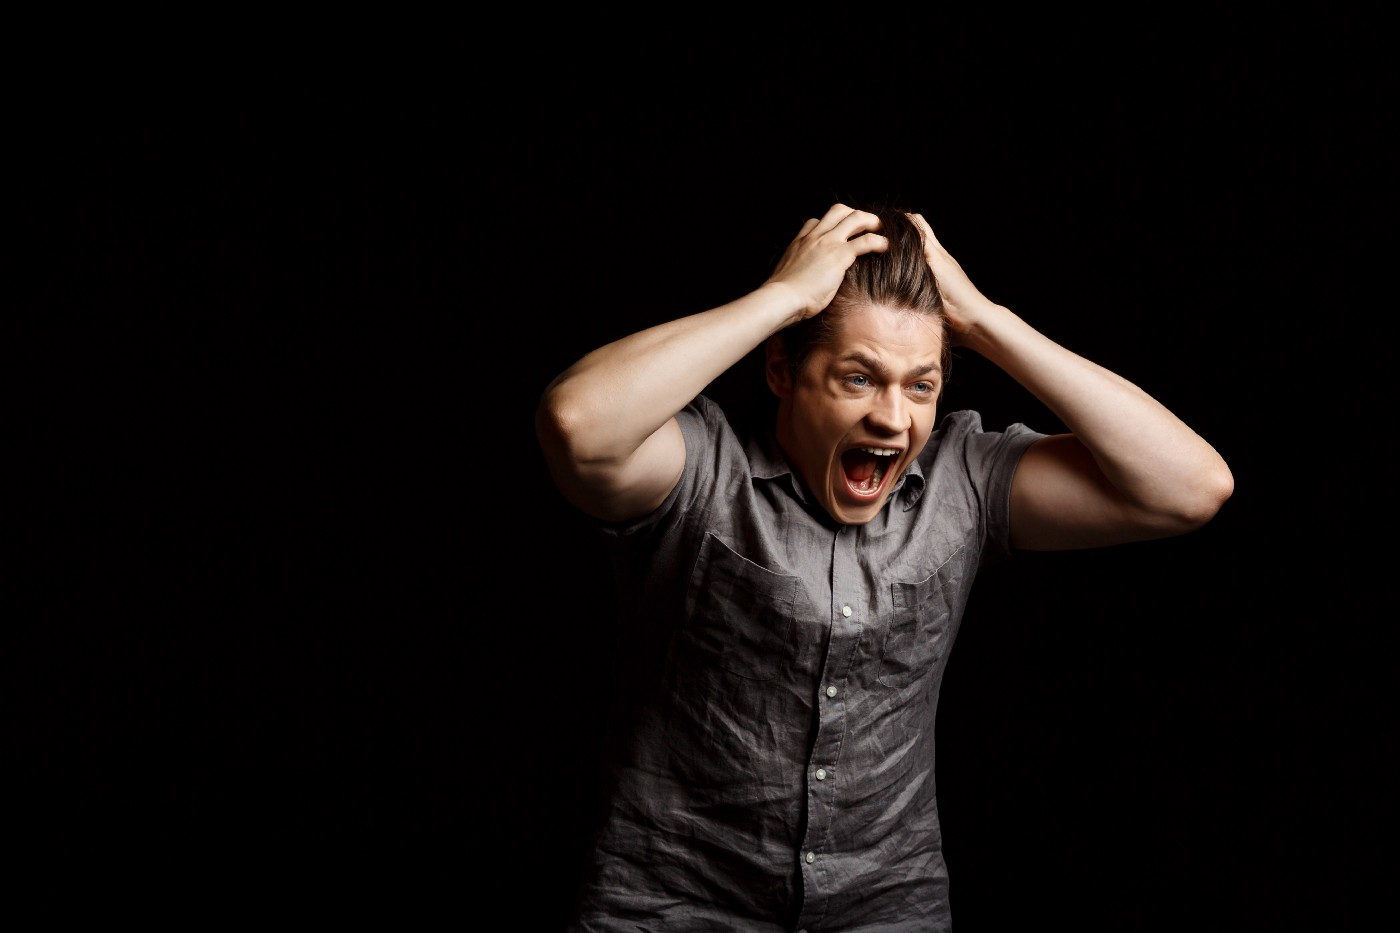 Man screaming against a black background